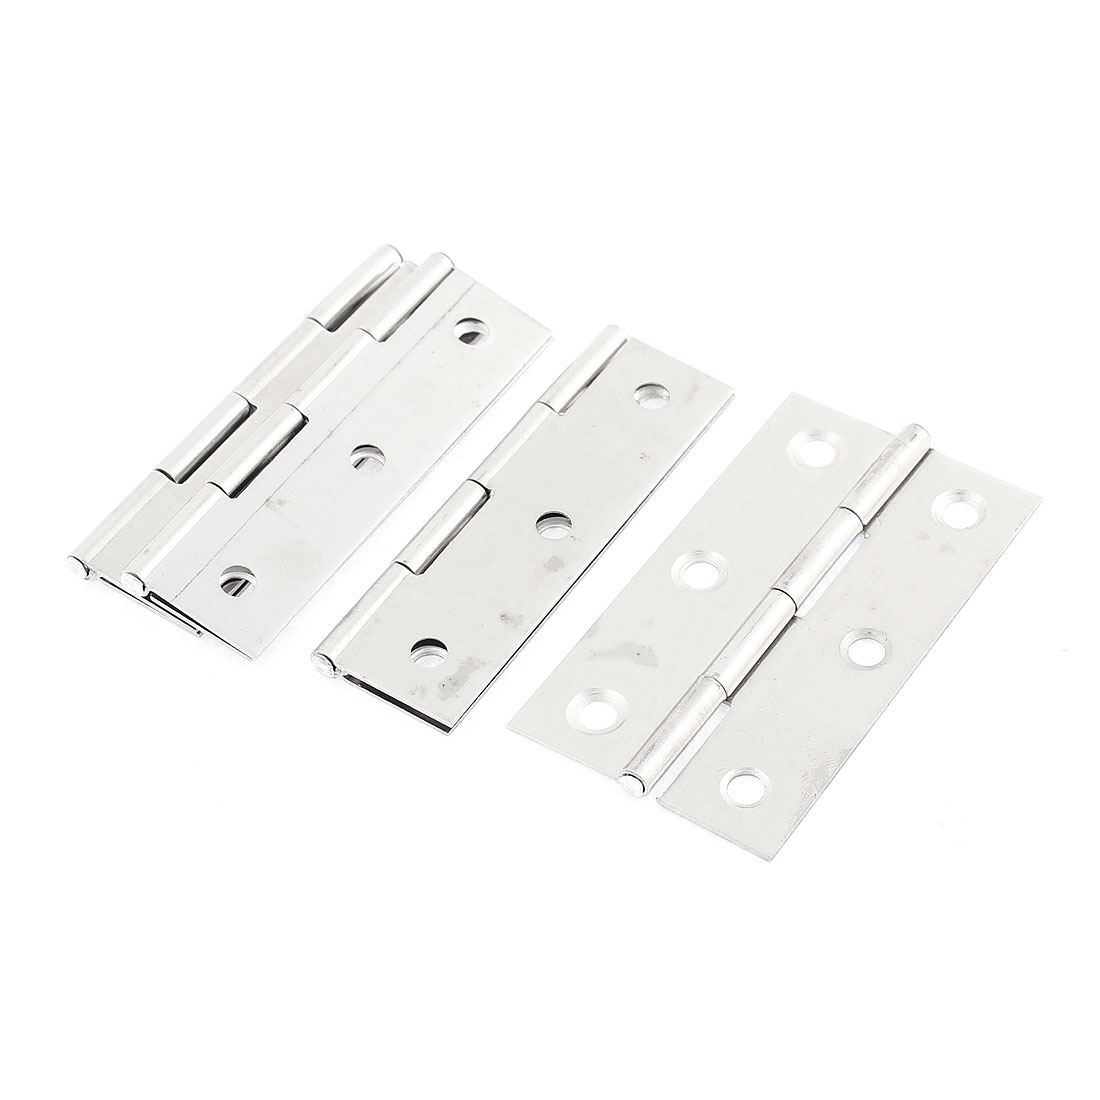 Cupboard Cabinet Door Foldable Design Butt Hinges 4PCS